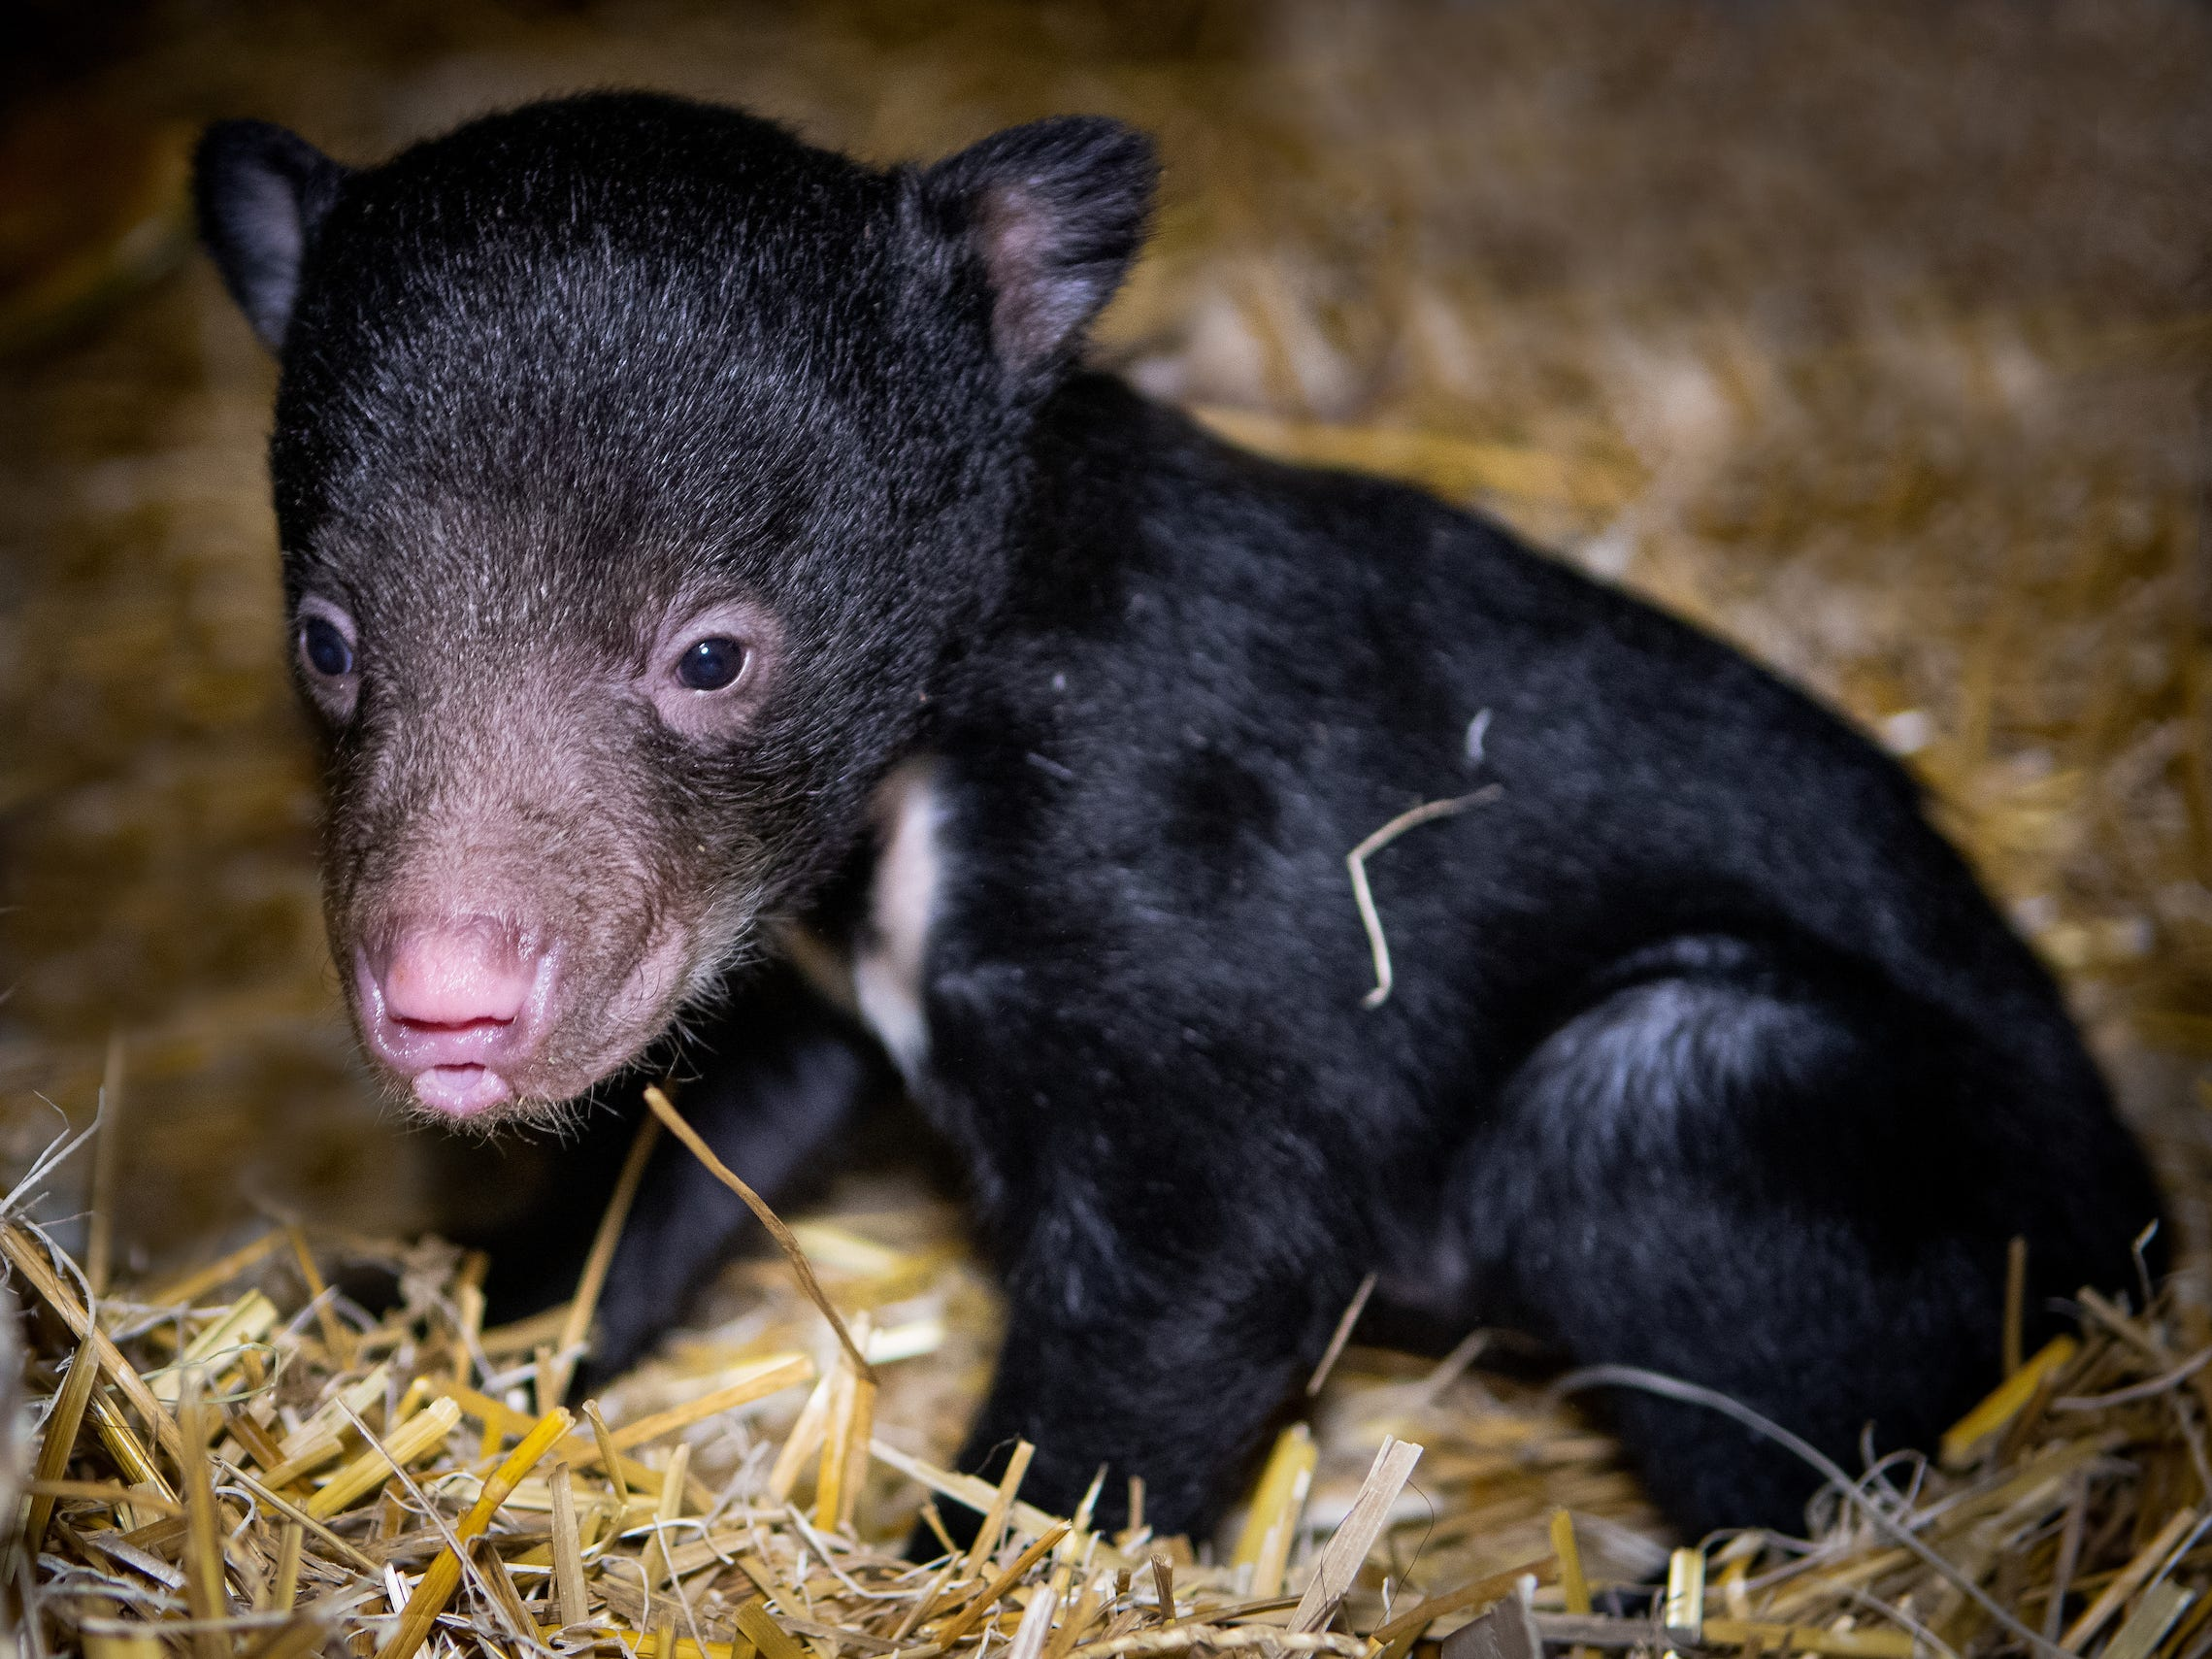 The first sloth bear cub in 30 years was born at Cleveland Metroparks Zoo on Jan. 14.